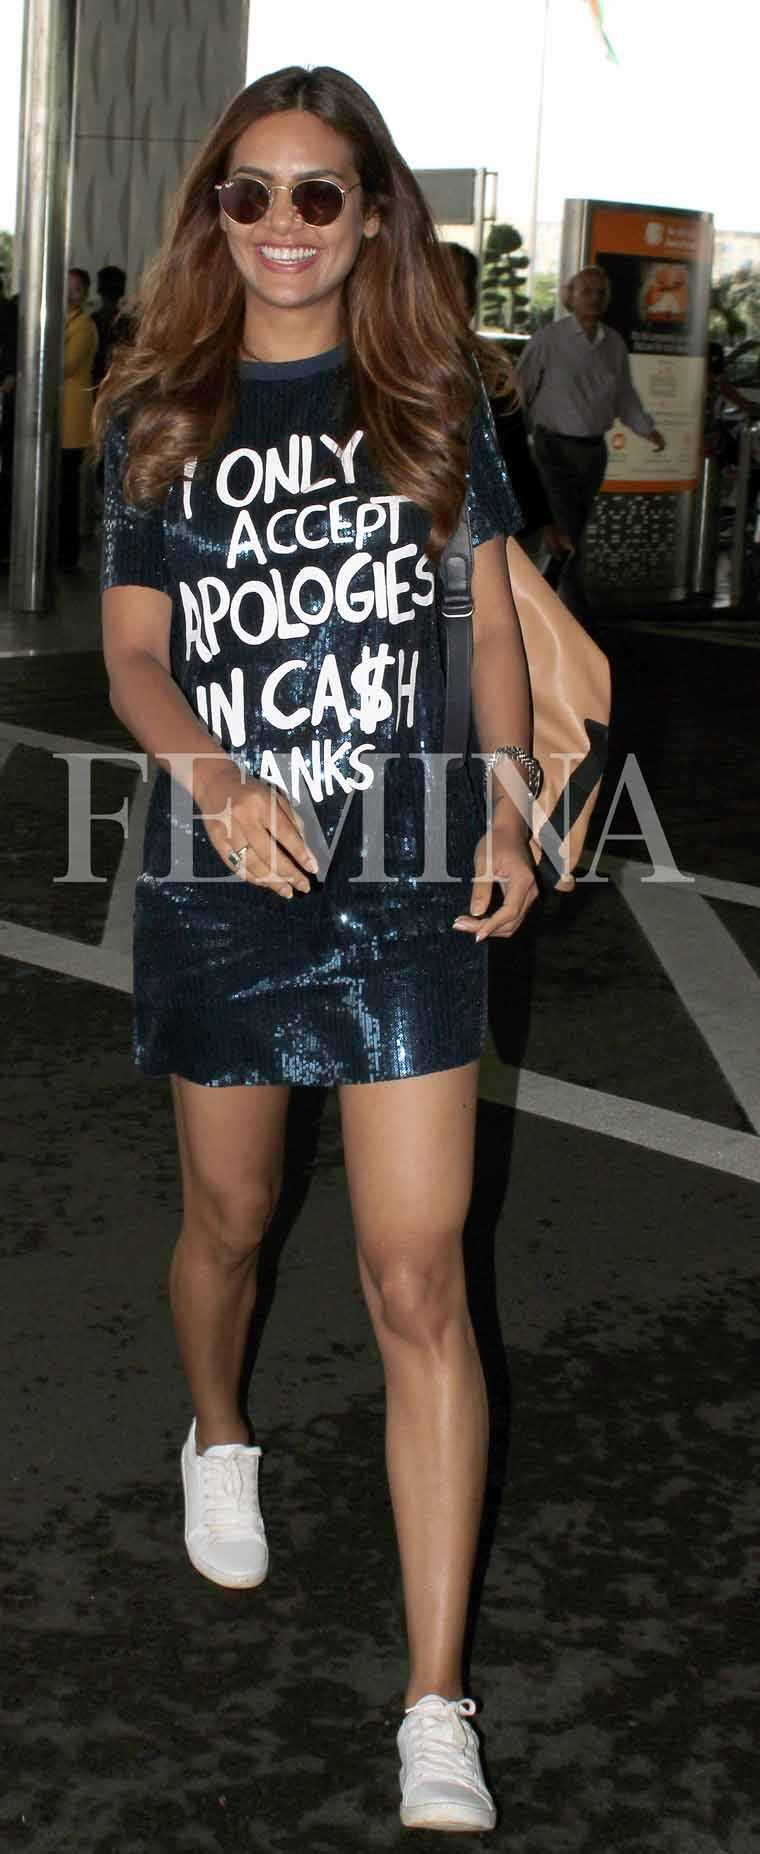 Esha Gupta opted for a sequinned mini dress from Zara with a bold slogan.